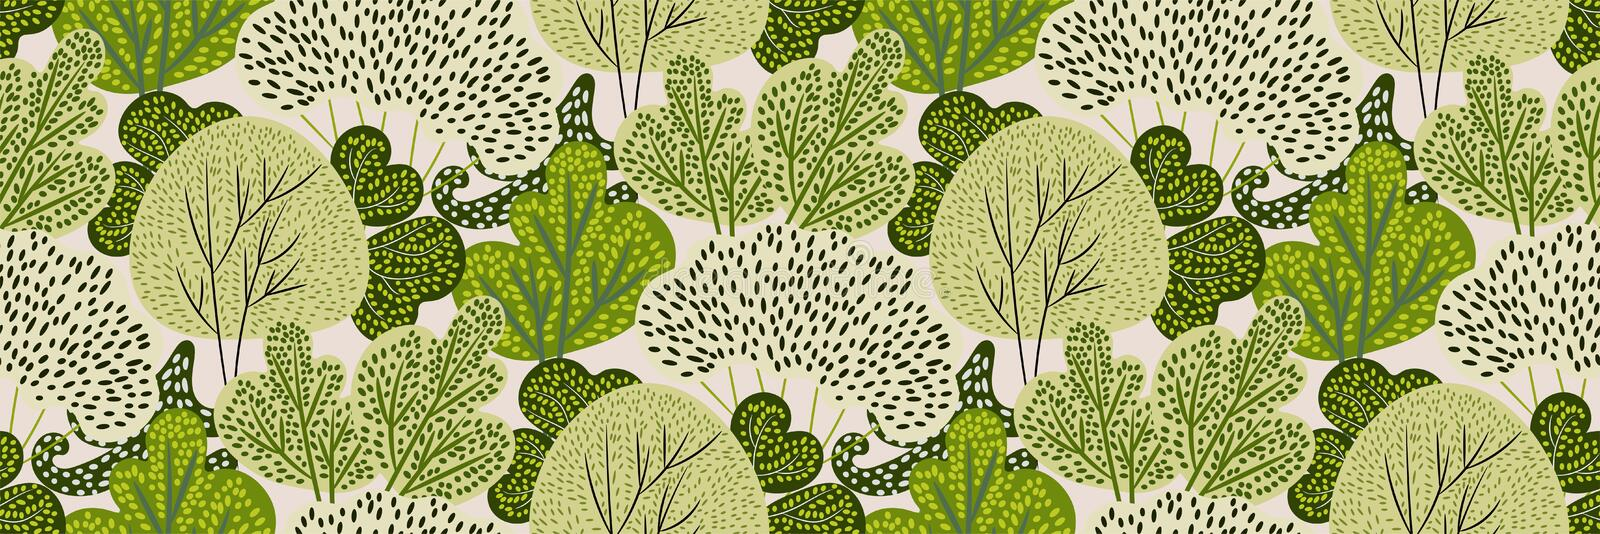 Seamless pattern with green trees in a hand-drawn style on a white background. Creative print with spring / summer forest. vector illustration